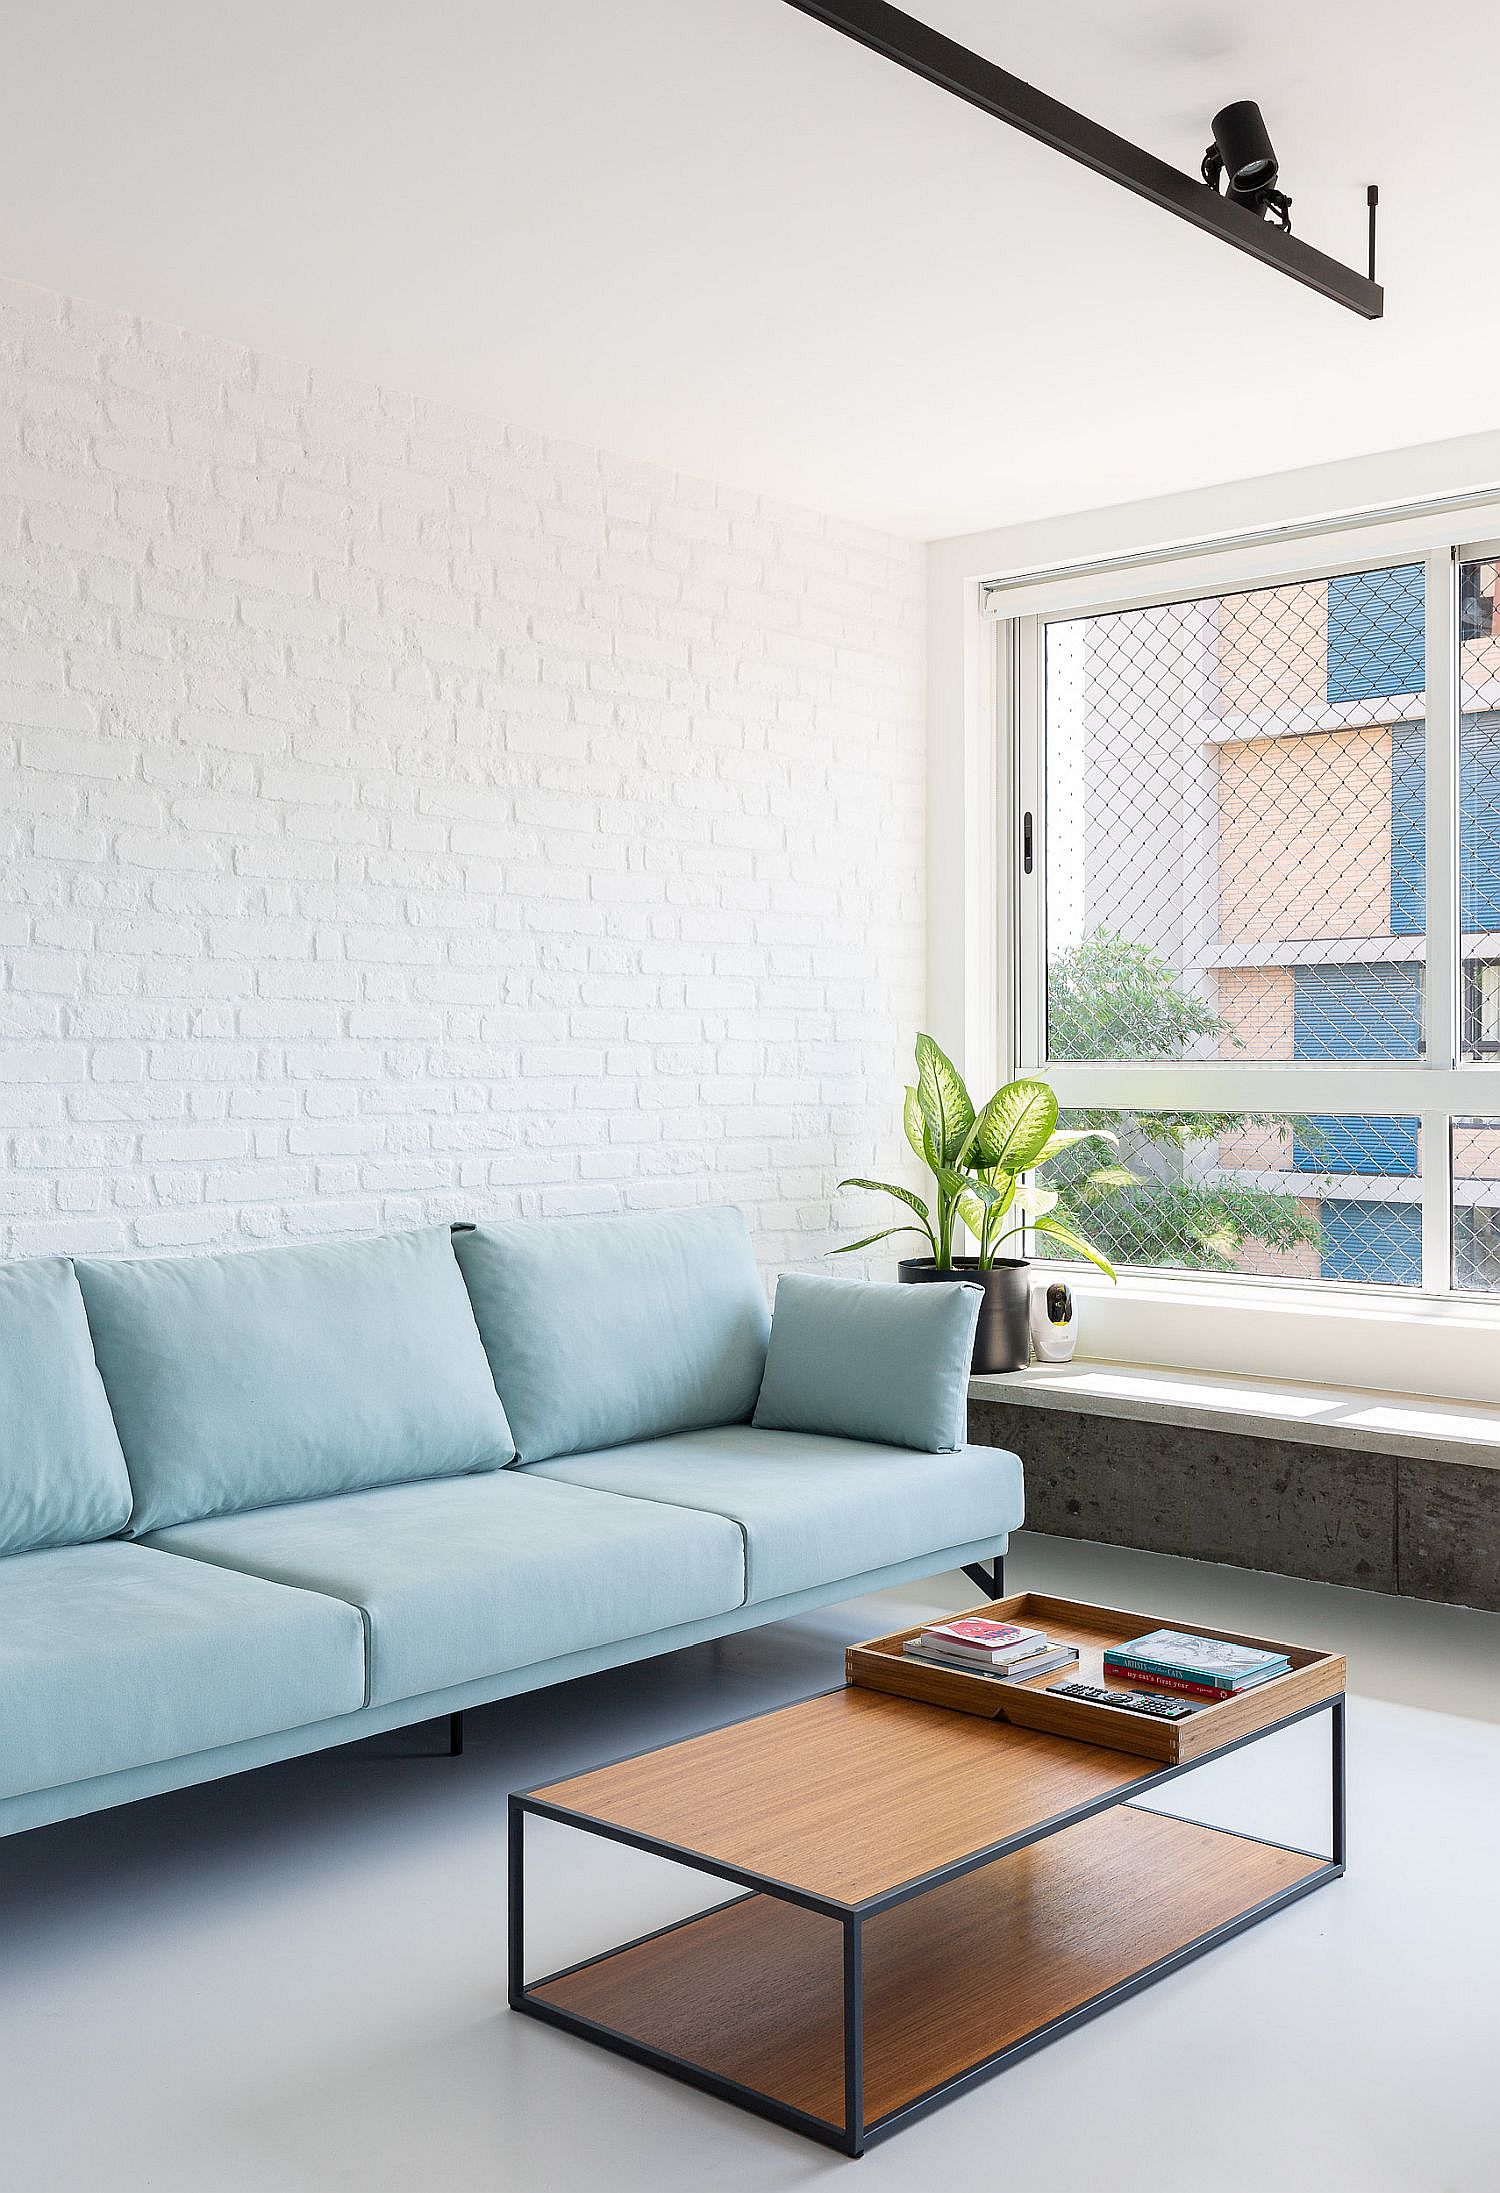 Brick wall section of the apartment provides backdrop to the beautiful blue sofa in this Sao Paulo apartment